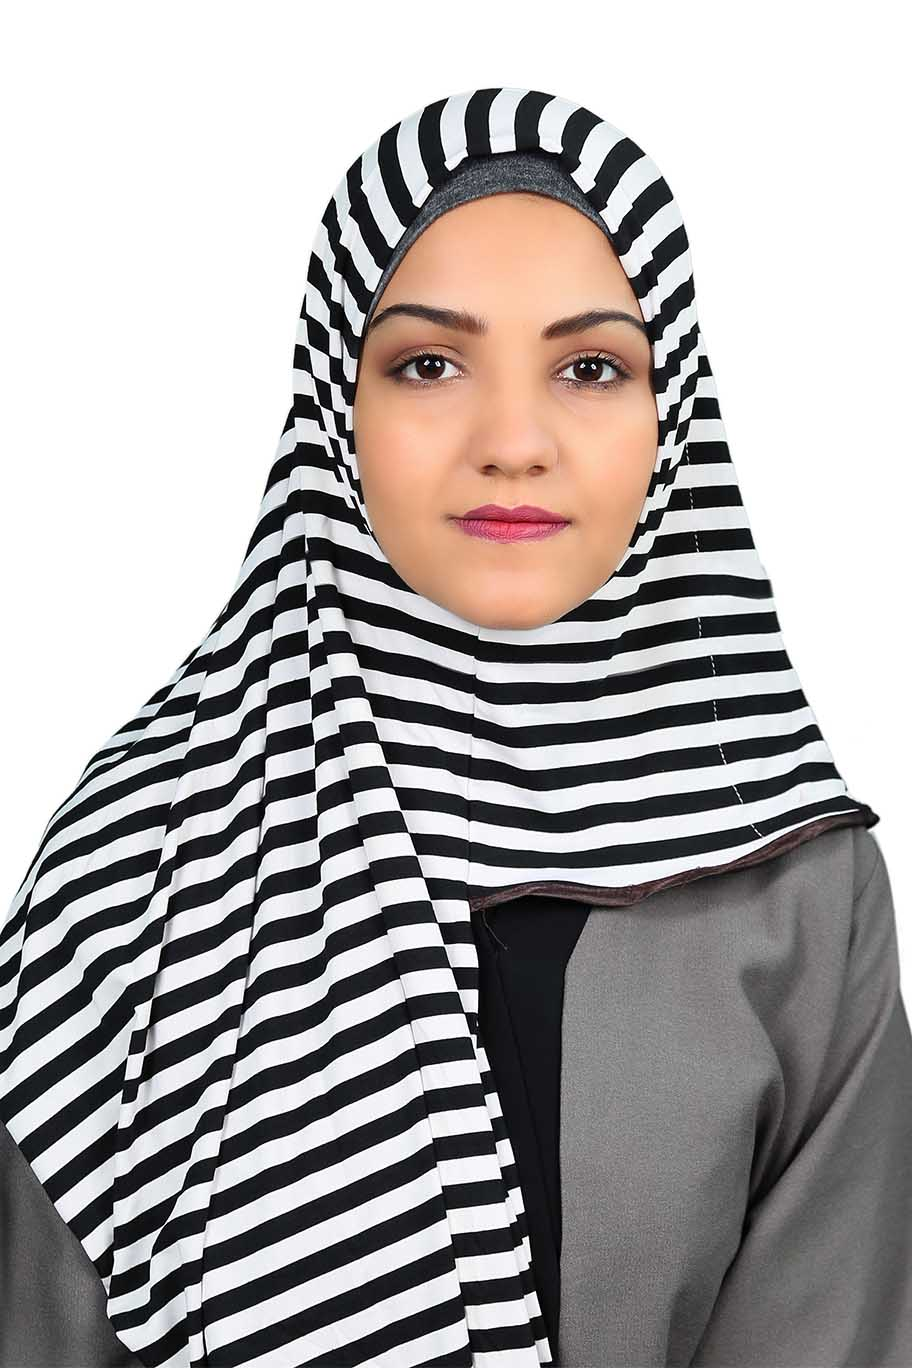 Black & White Striped Ready To Wear Hijab - Jersey Hijab - The Modest Look